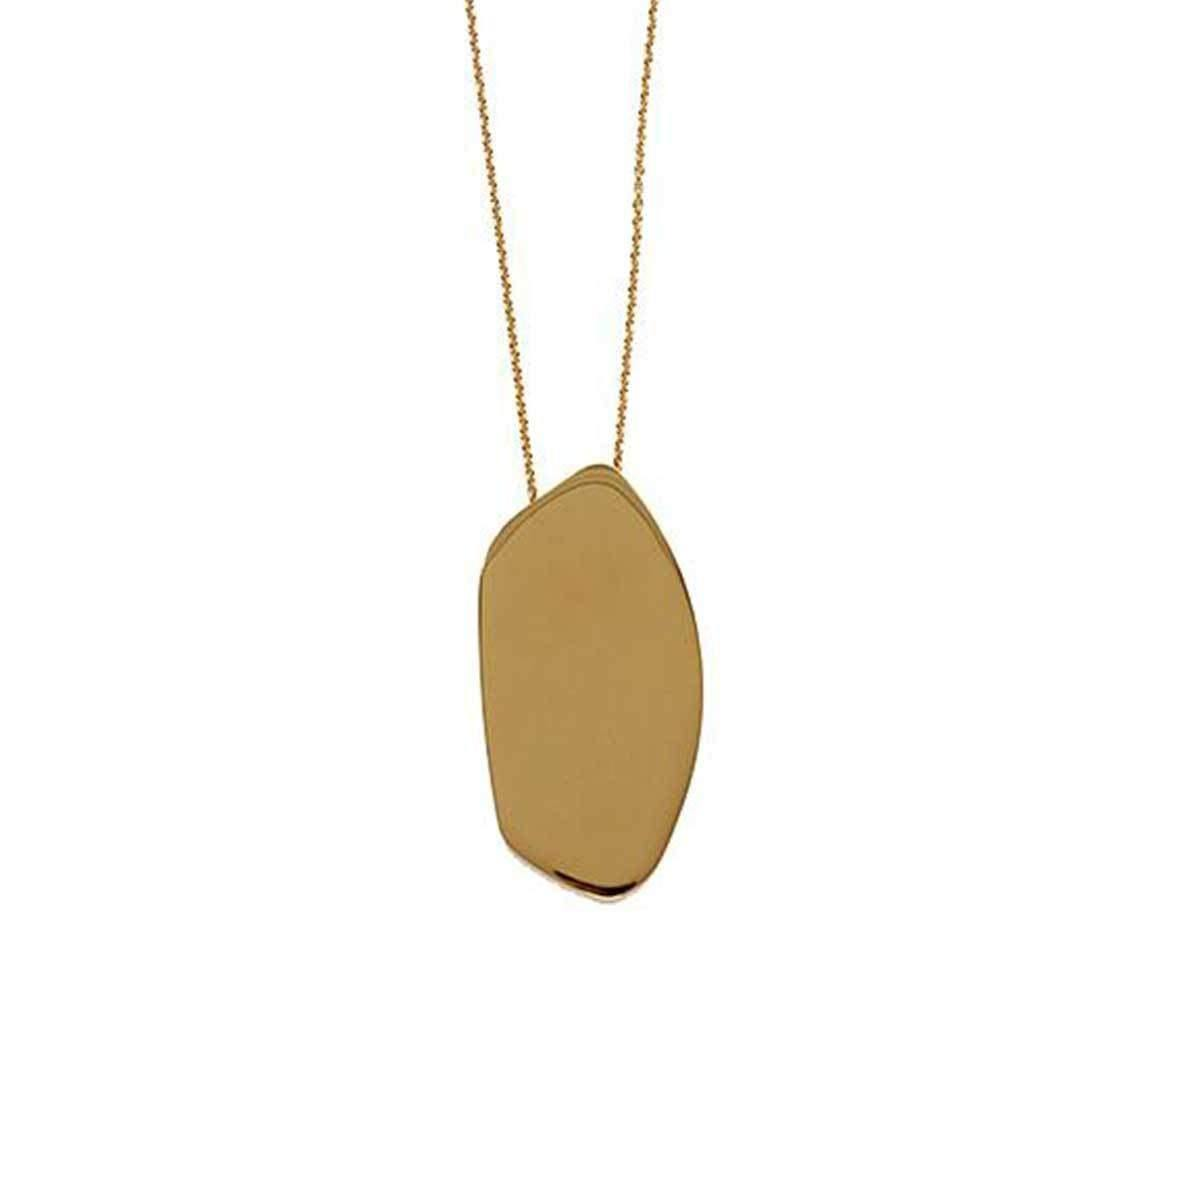 Asymmetric Chic Pendant In 18k Gold-Plating